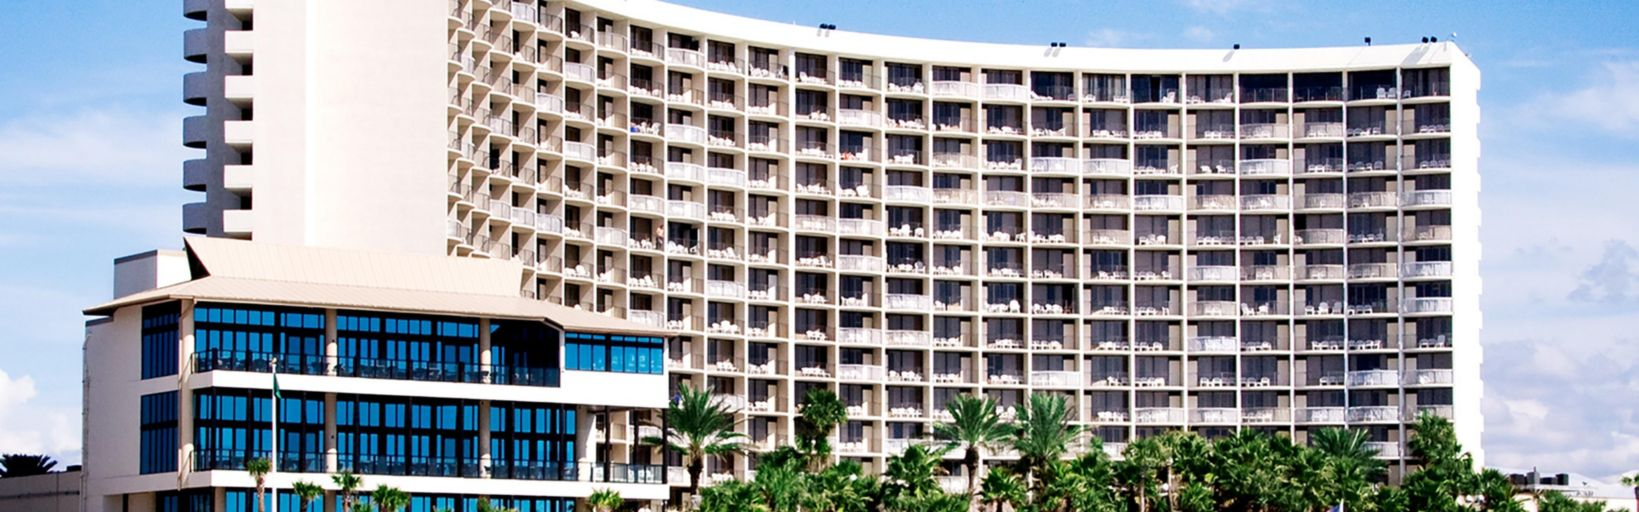 Panama City Beach Hotel Exterior View From